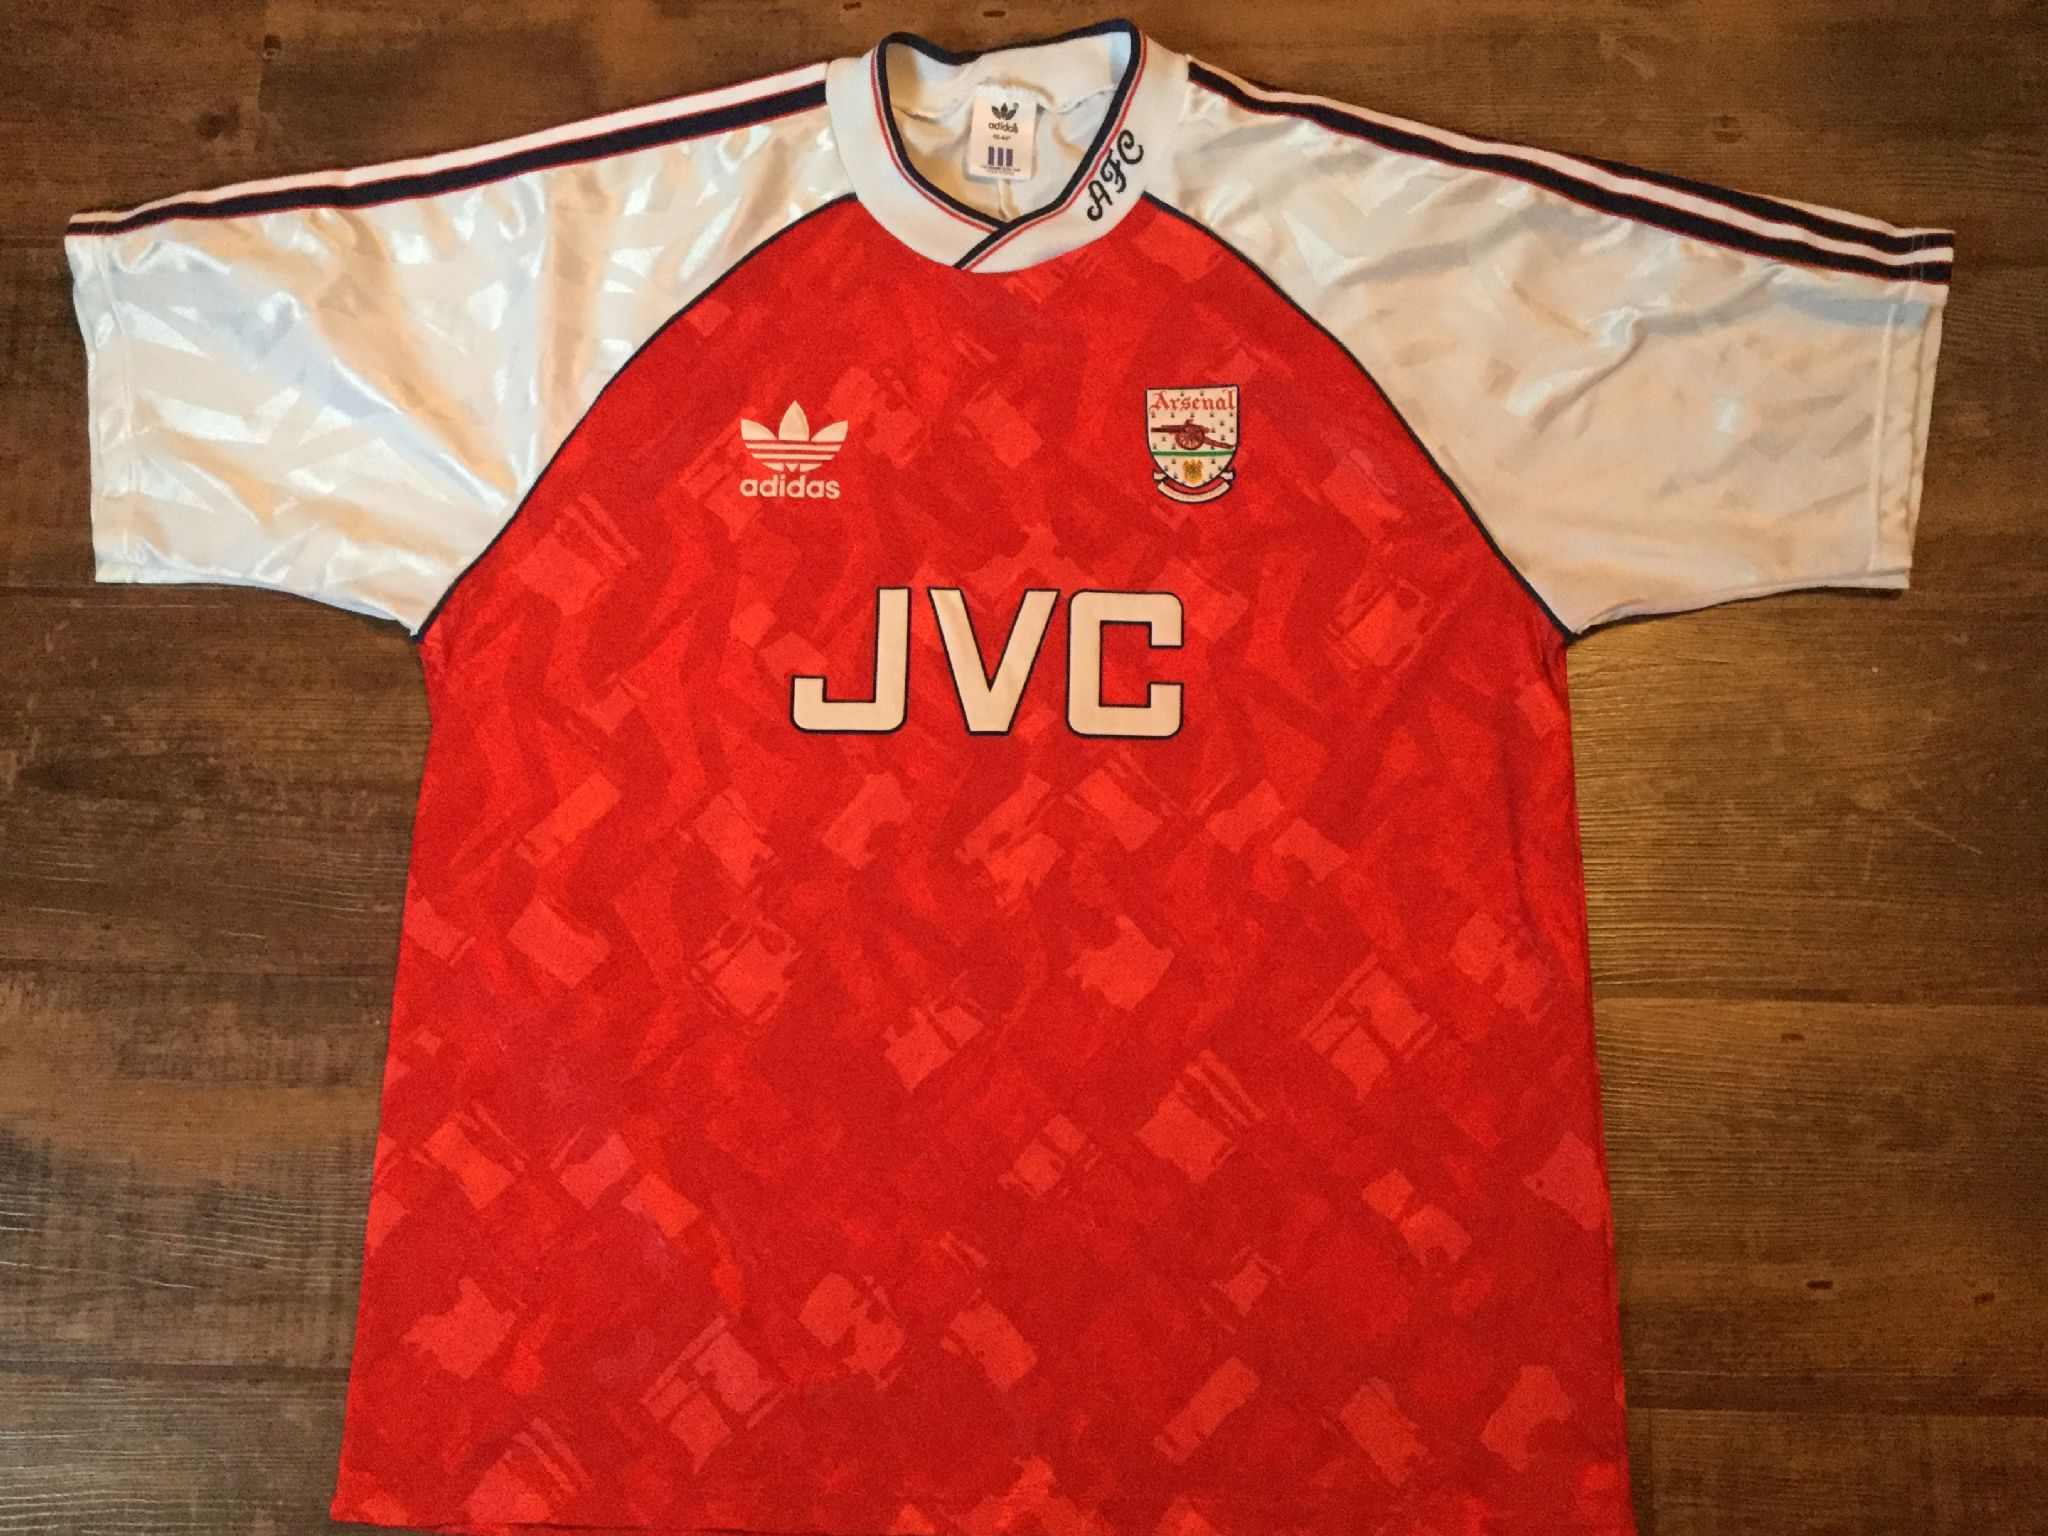 online store fca83 c16d2 Buy Vintage Arsenal Shirts – EDGE Engineering and Consulting ...